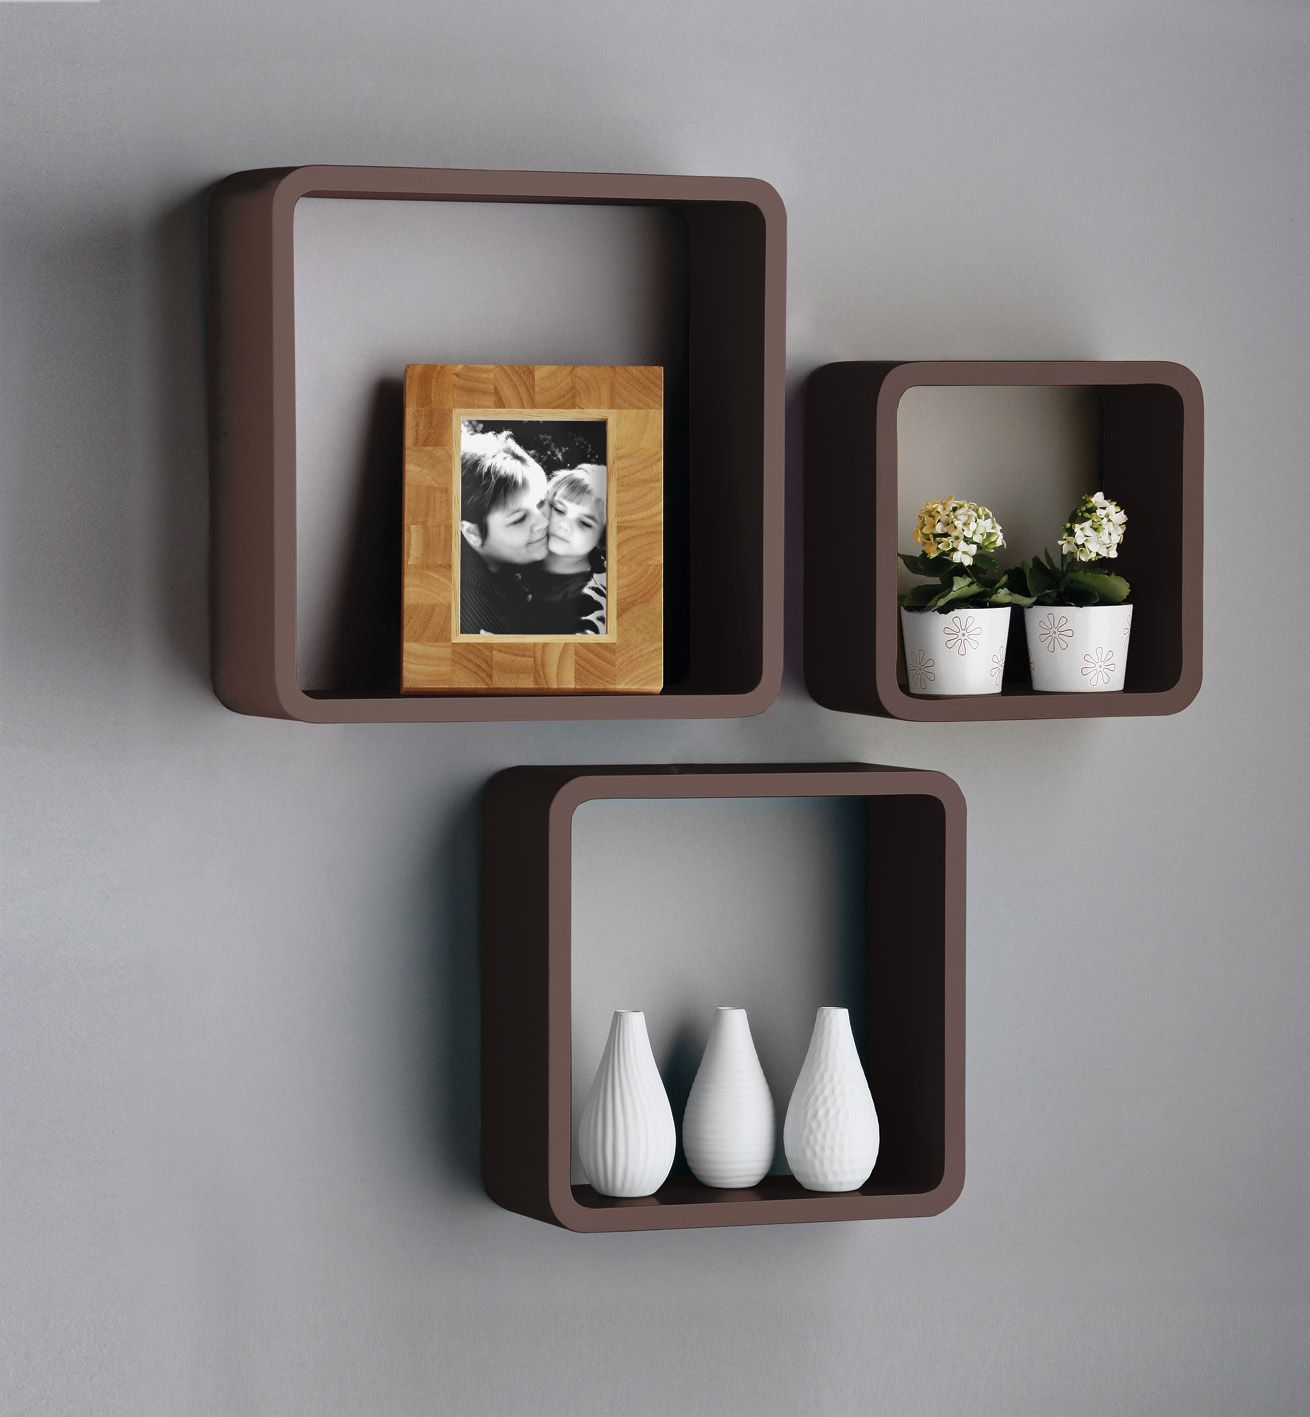 Melannco Floating Shelves Magnificent Square Box Floating Shelf  Home Decor  Pinterest  Shelves Inspiration